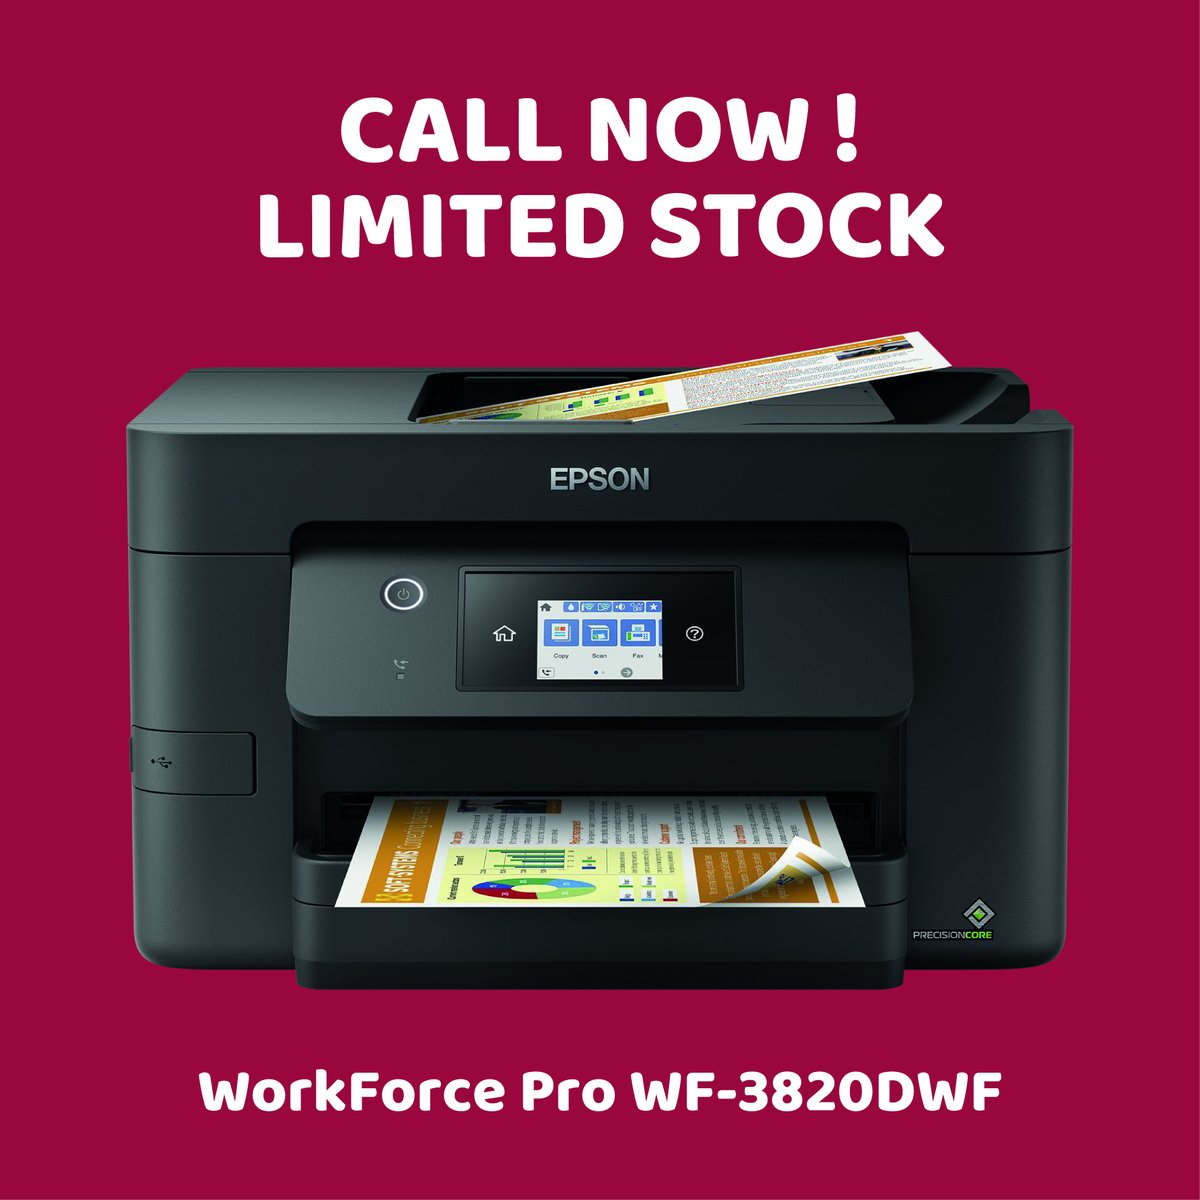 Epson printers now available. Limited stock available ! get in touch with the team today for a quote.  #nuneaton #local #print #printers #warwickshire #offers #epson #wireless #workforce